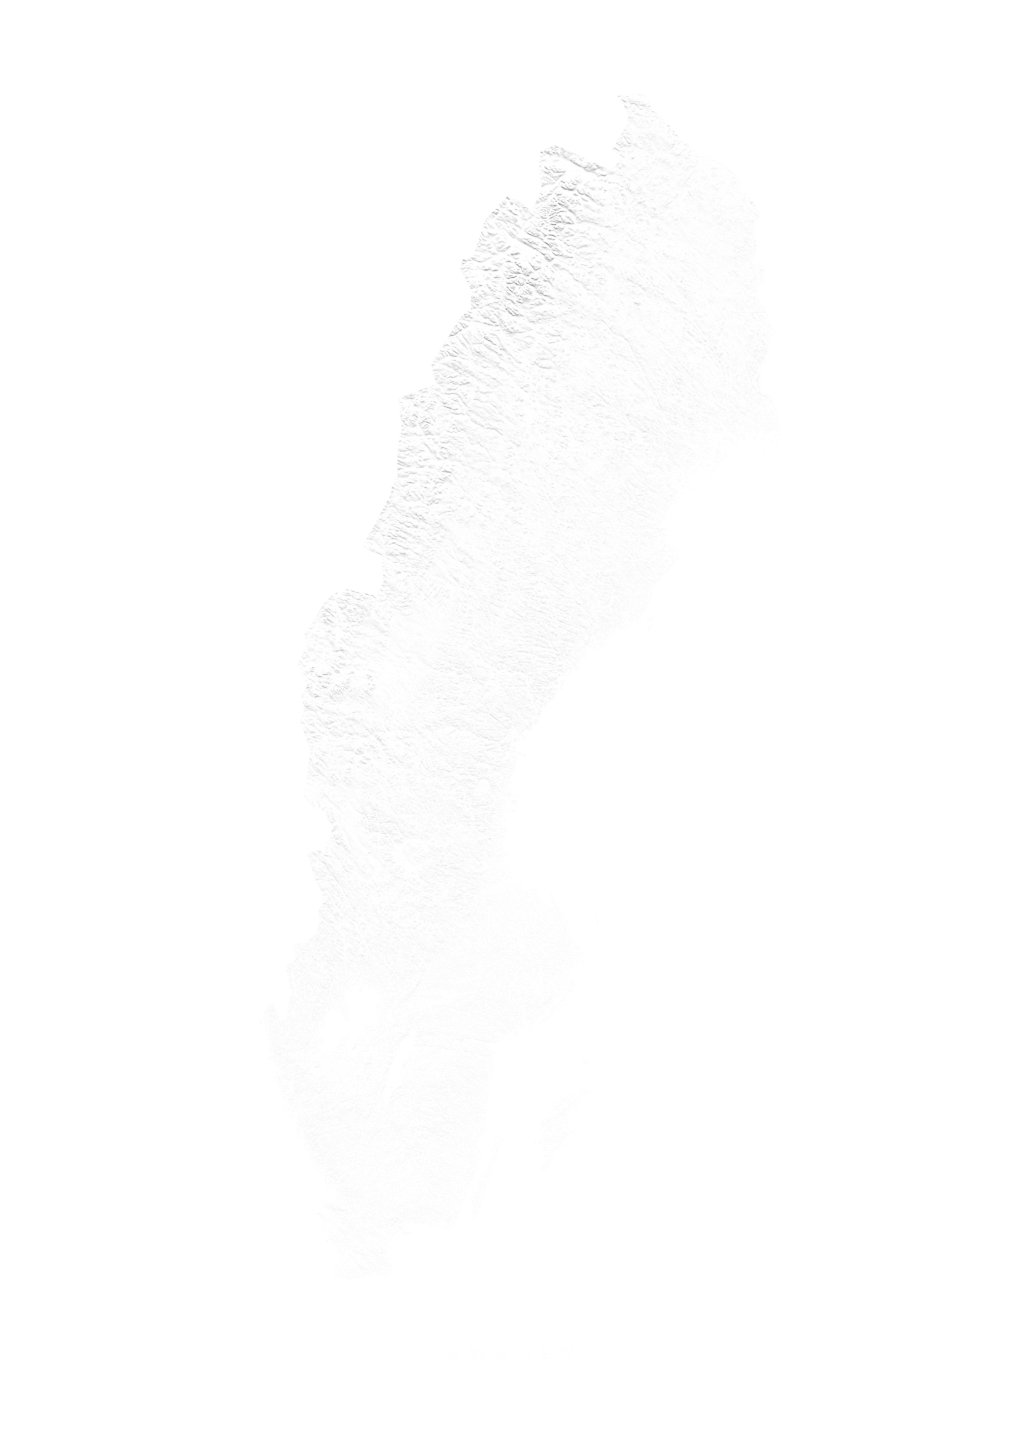 Sweden wall map